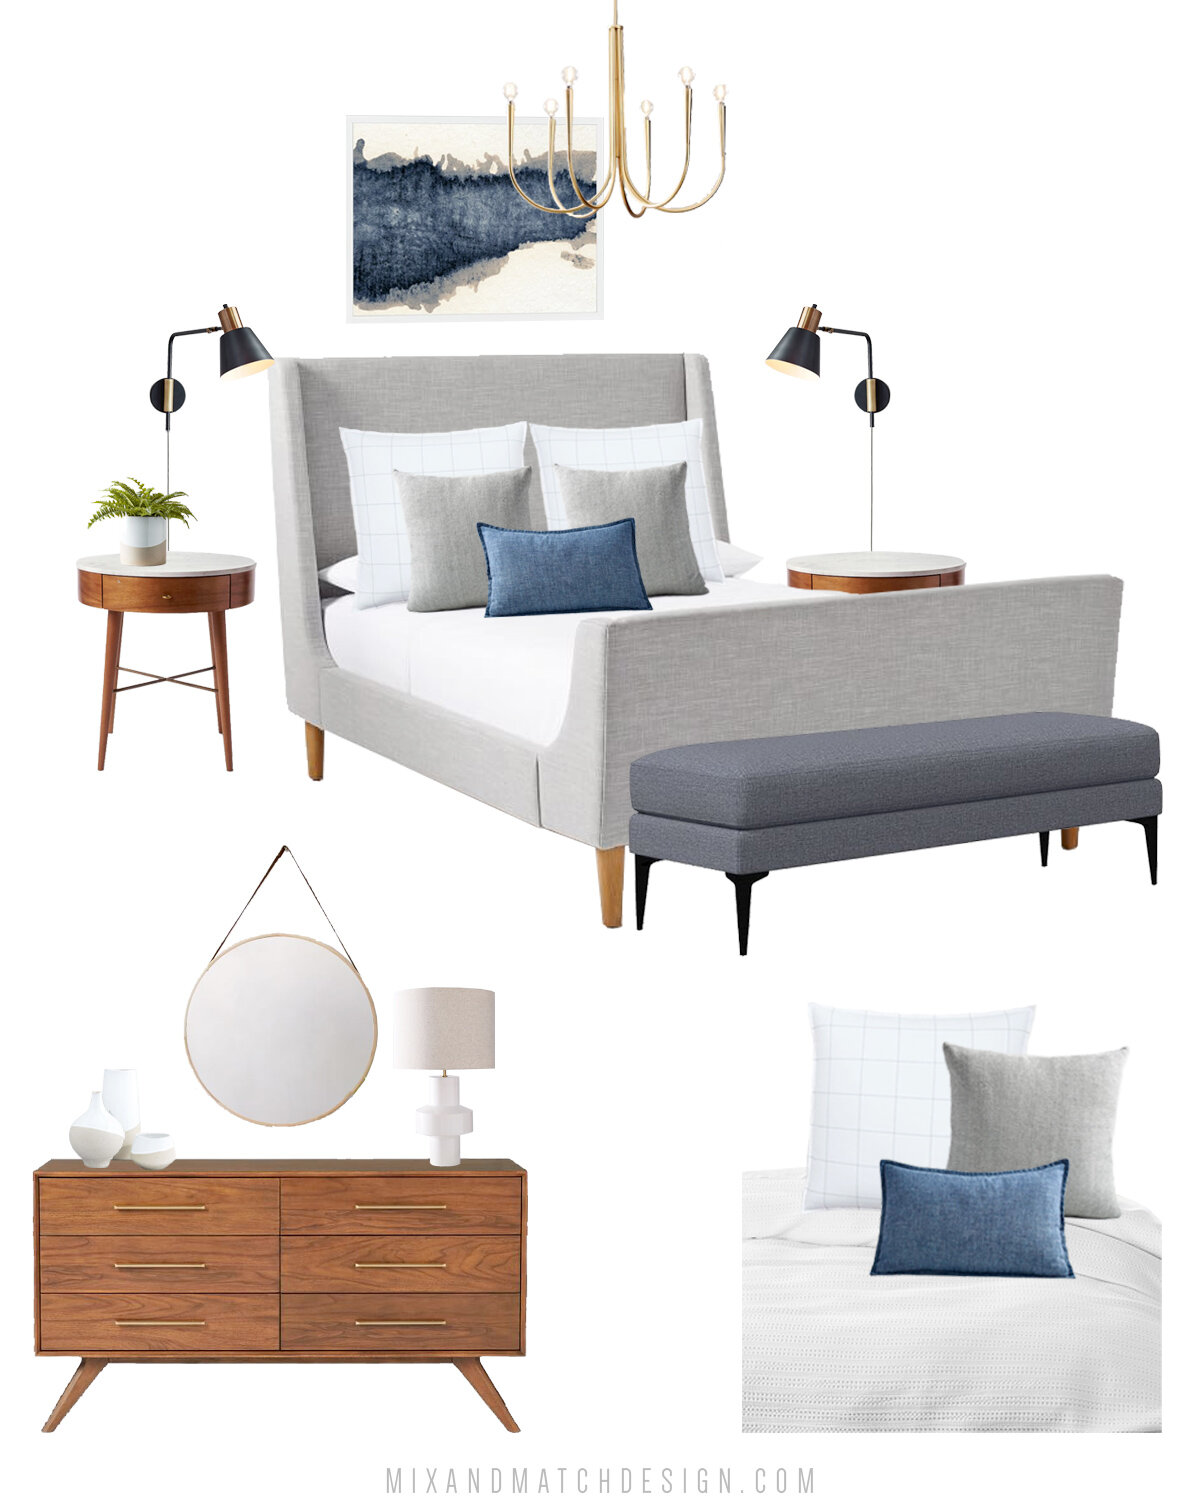 It's time for another Shop the Design! This time, it's a mid-century modern bedroom from West Elm. Grab the sources and hear the thoughts behind the design over on the blog!